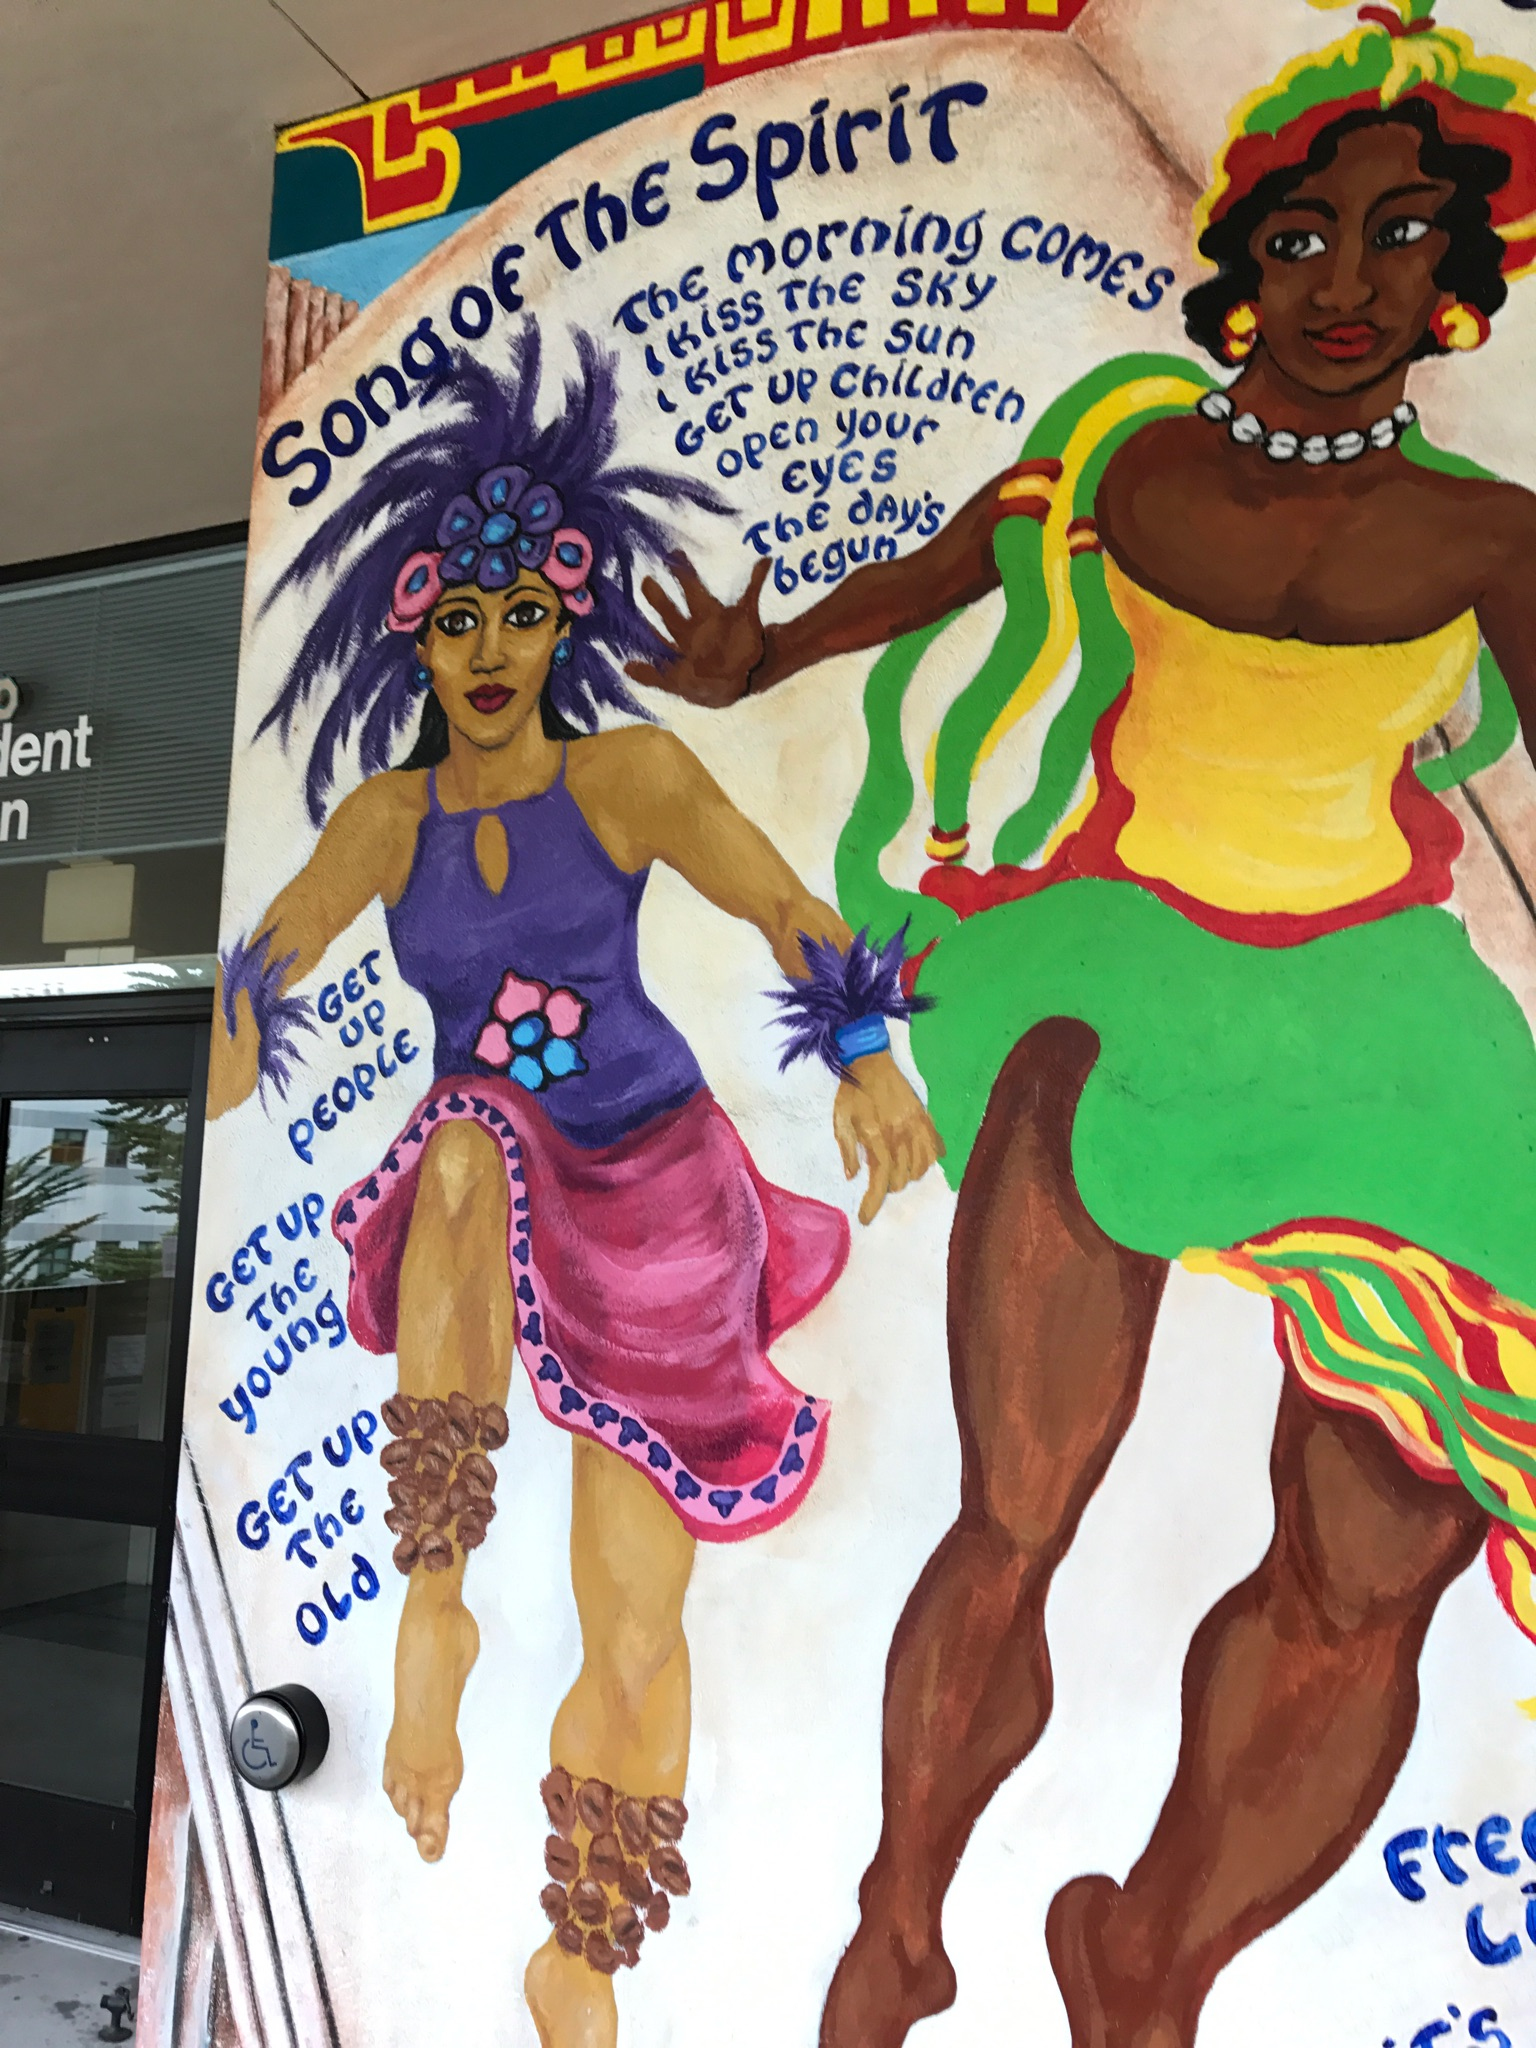 Mural done on the Student Union exterior building at City College, a cultural mural depiction of great possibilities and accomplishment for VIDA students. Bright futures, the day has begun! Thursday, September 14, 2017. San Francisco, CA. (Photo by Diane Carter.)